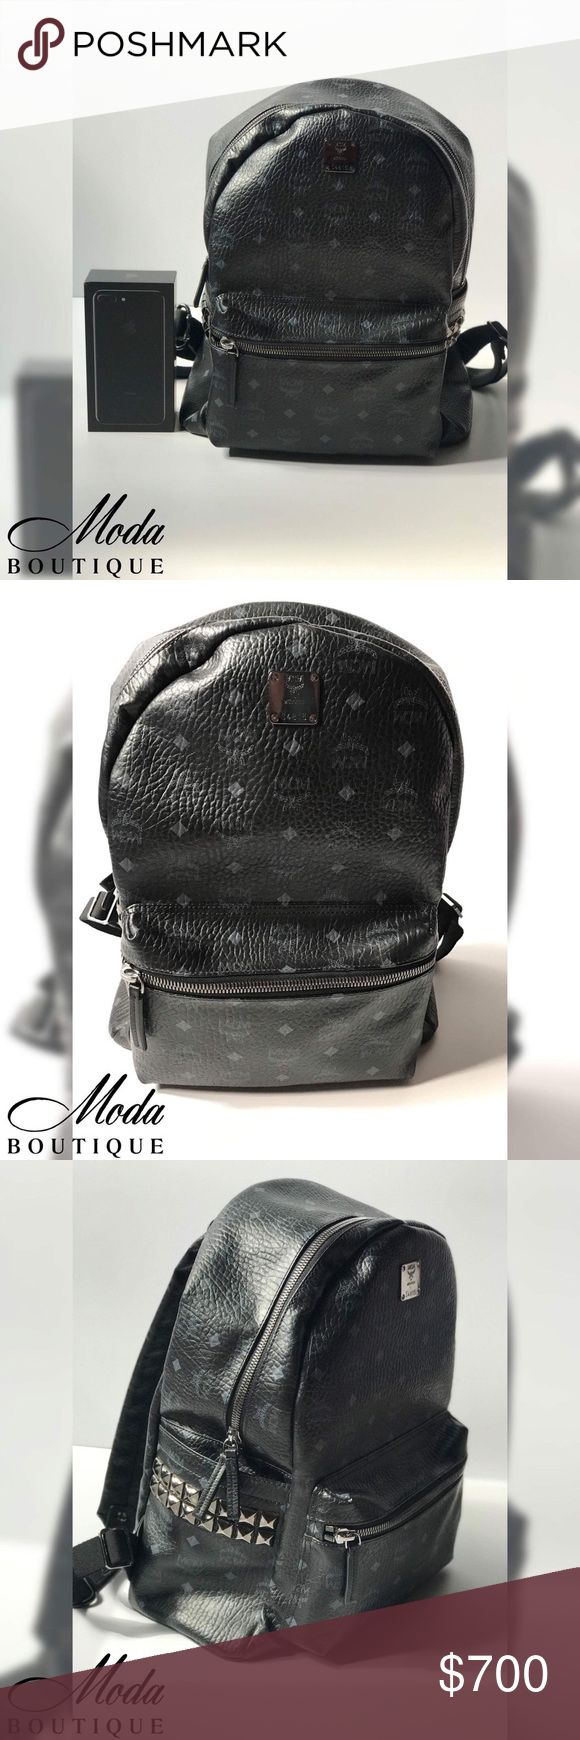 """RESERVED LARGE MCM Stark Studded Backpack Sale pending. Large MCM Stark Side Studded Backpack - Black.   EUC condition Empty weighs 4lbs. Width: 14.5"""" Hieght: 18"""" (top handle) 7"""" depth. (easily fits my 15"""" Macbook Pro).   """"Gleaming pyramid studs, logo-stamped MCM. Padded pocket for 15"""" laptop""""   Two-way zip Top handle; adjustable padded straps 2 slip pockets Interior: smartphone pockets + padded laptop compartment Coated canvas with leather  Moda Boutique SF Wholesale Wholesales…"""